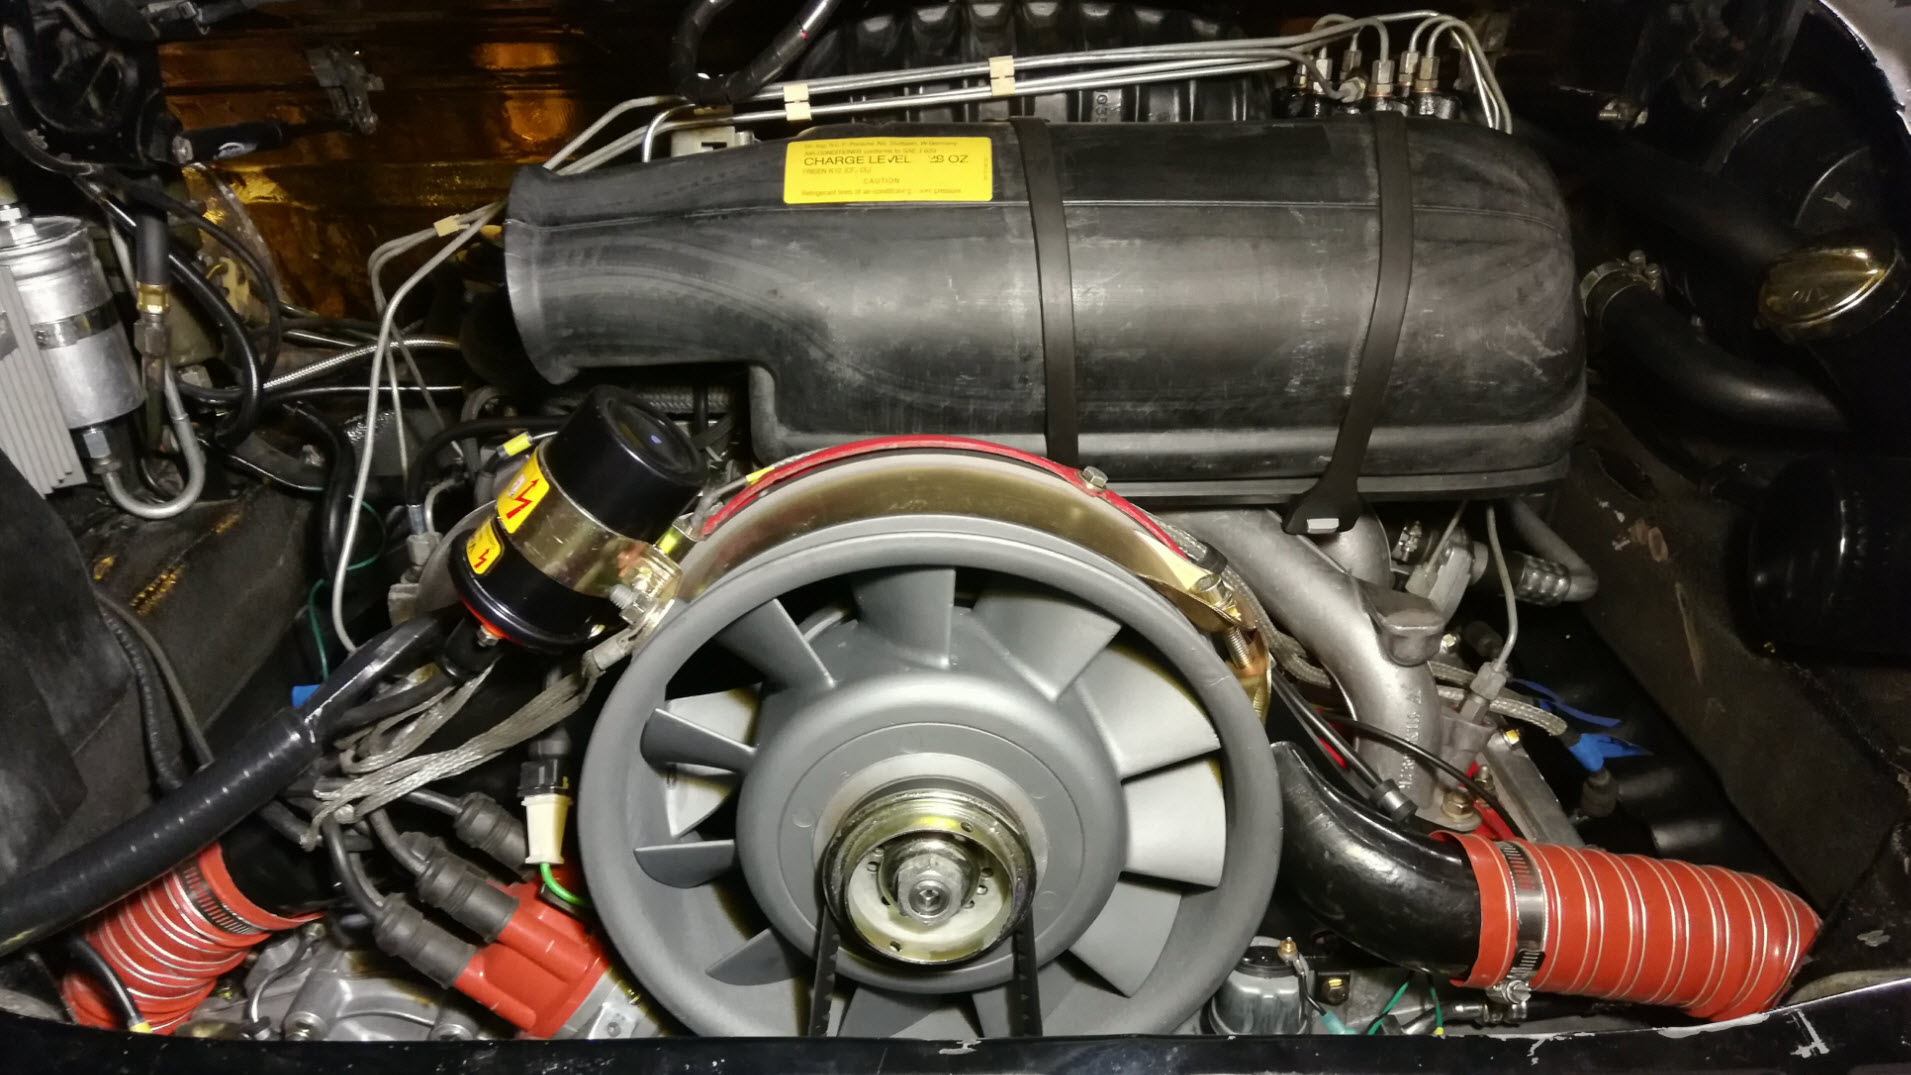 How To Find And Fix Common Oil Leaks On A Classic Air-Cooled Porsche 911